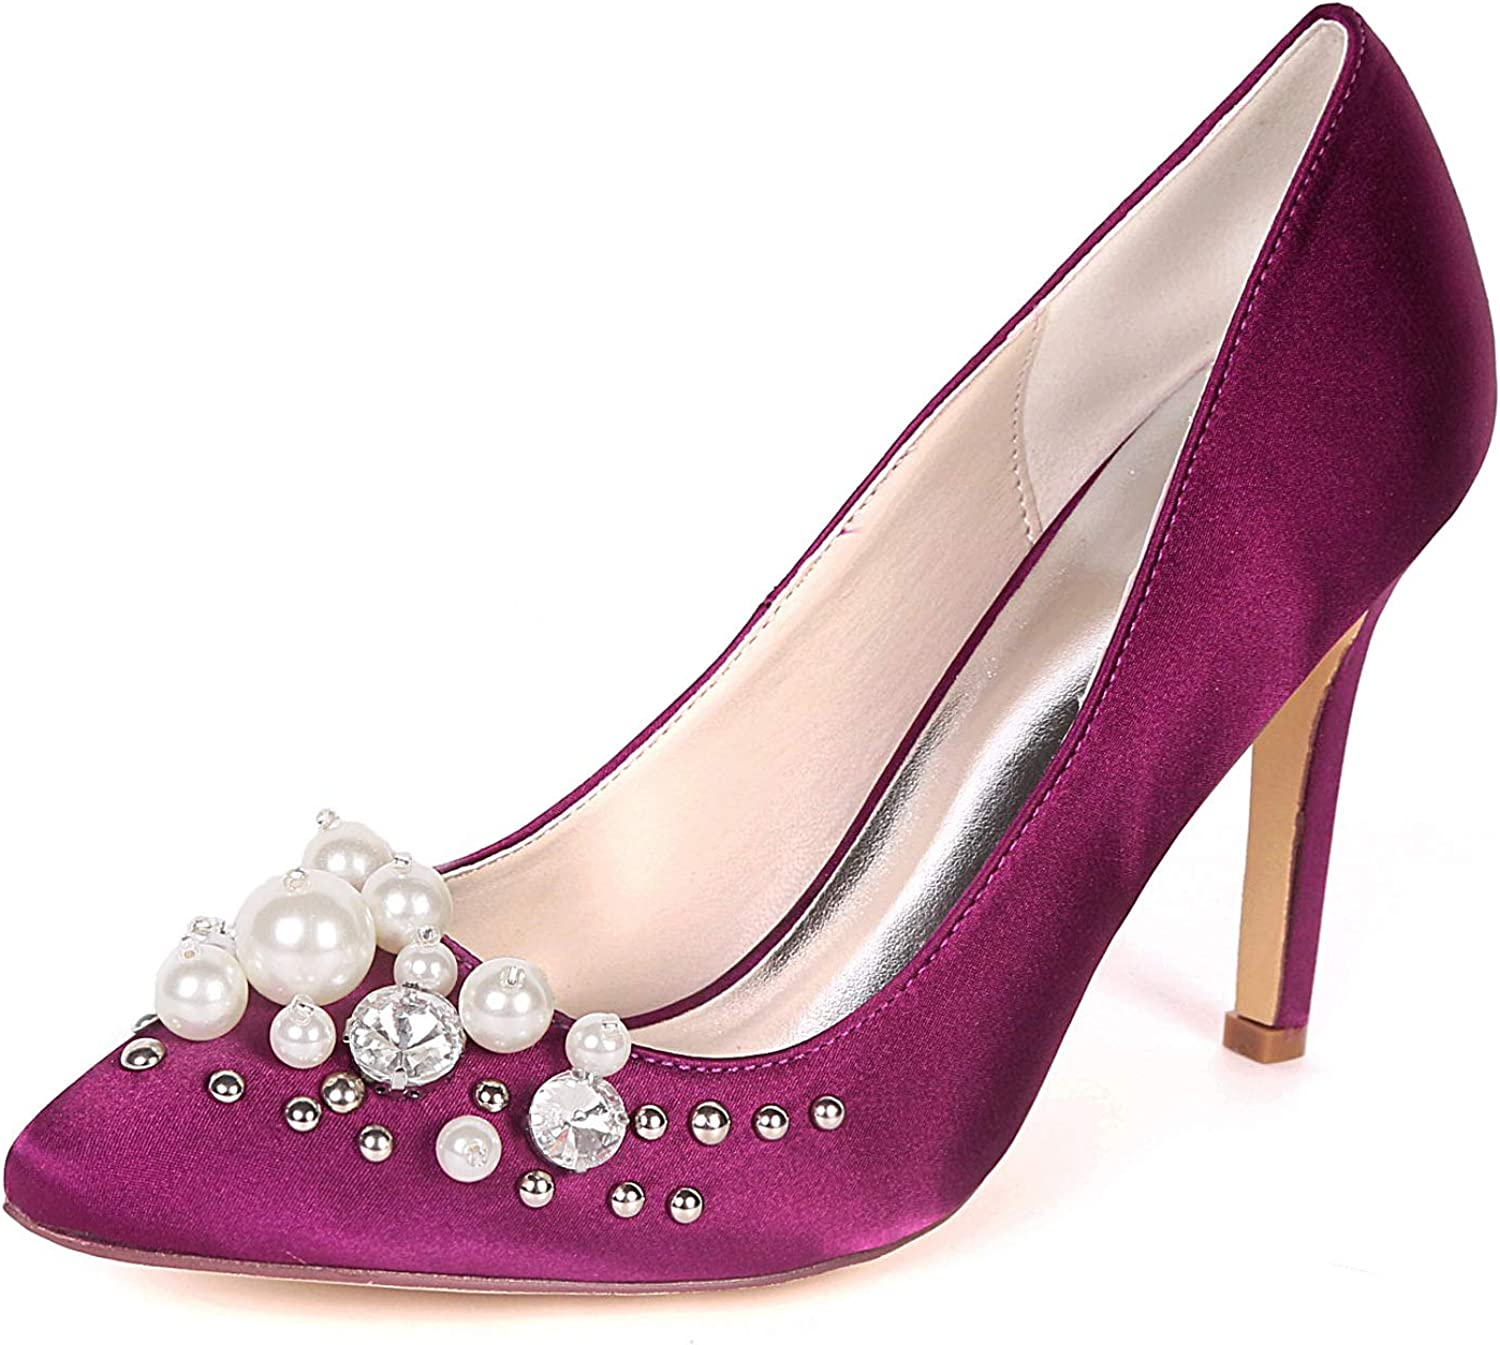 LLBubble Women Stiletto Heels Satin Dress shoes Pointed Toe Slip On Crystals Bridal Pumps 0608-01F